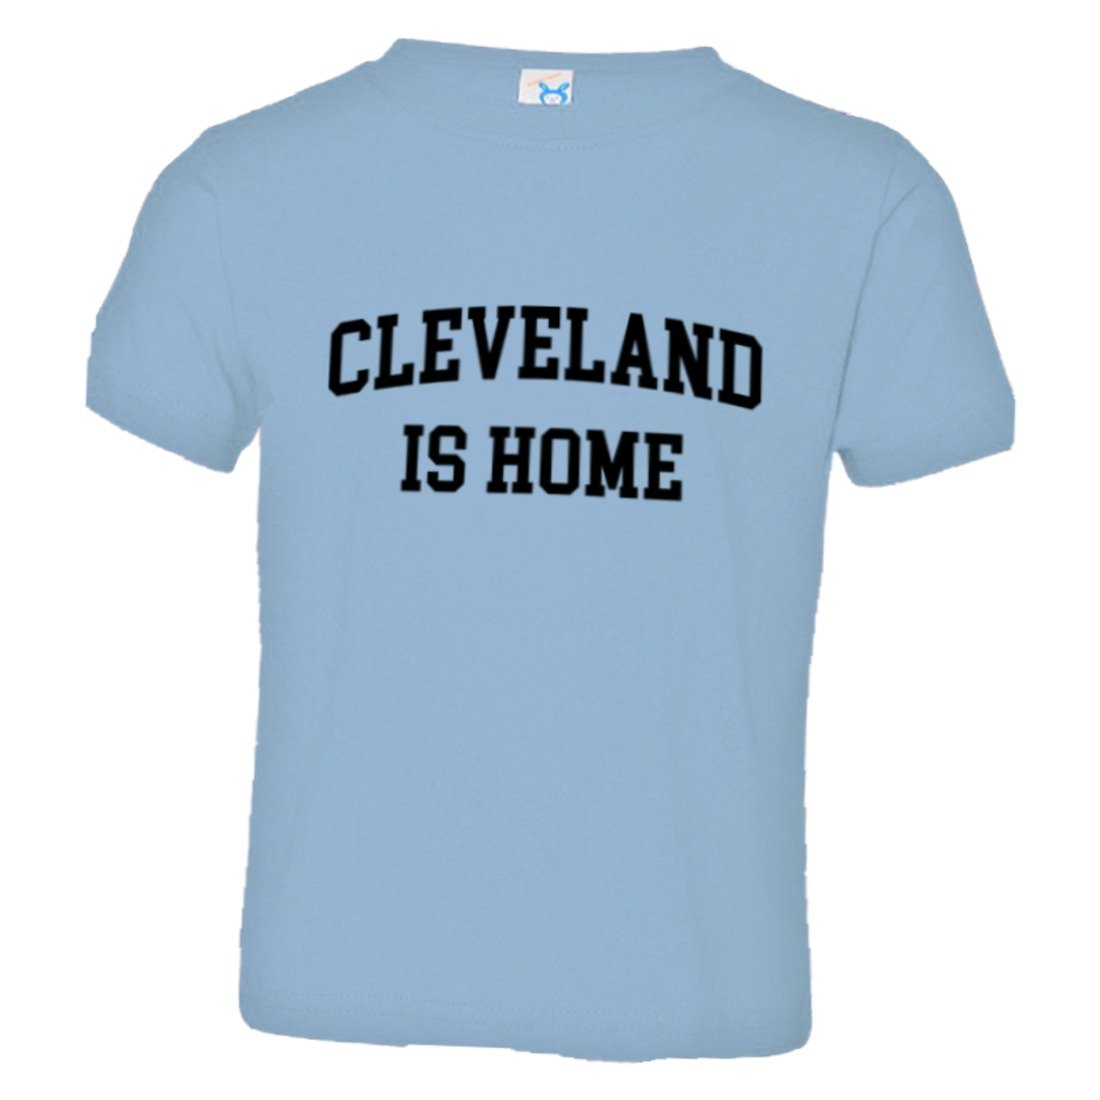 Toddler Cleveland Ohio is Home Born in from HQ Tee Shirt